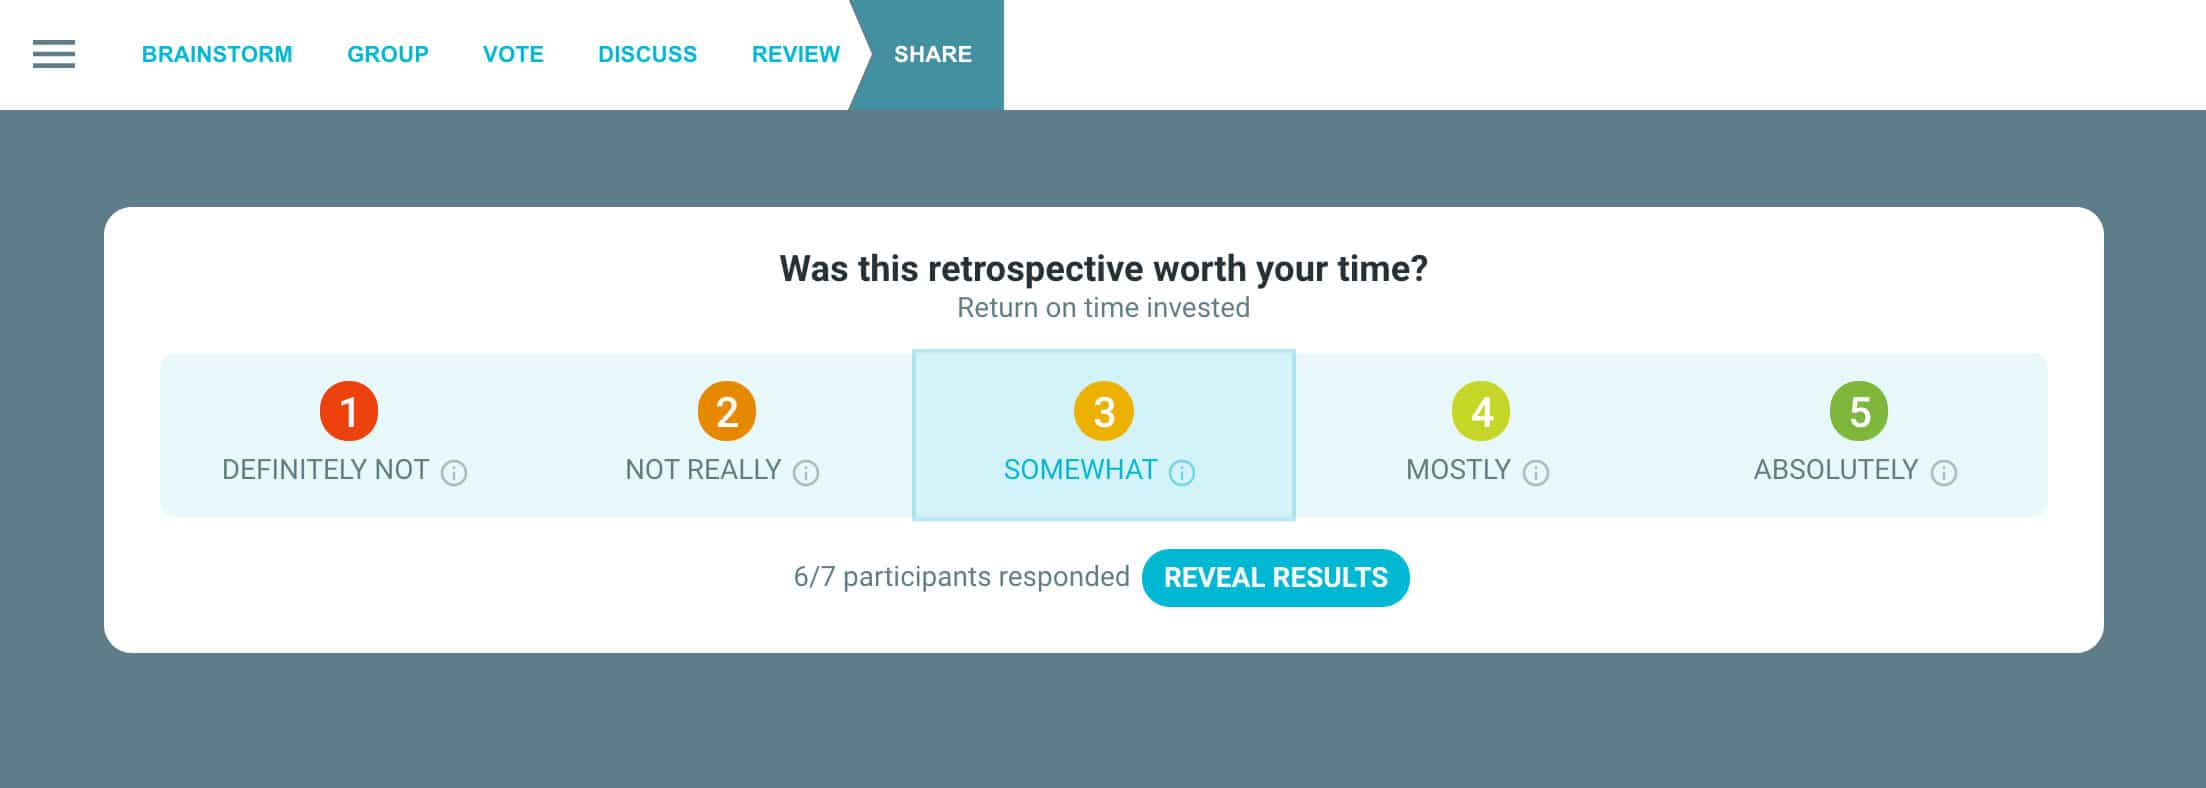 Return on Time Invested Results TeamRetro